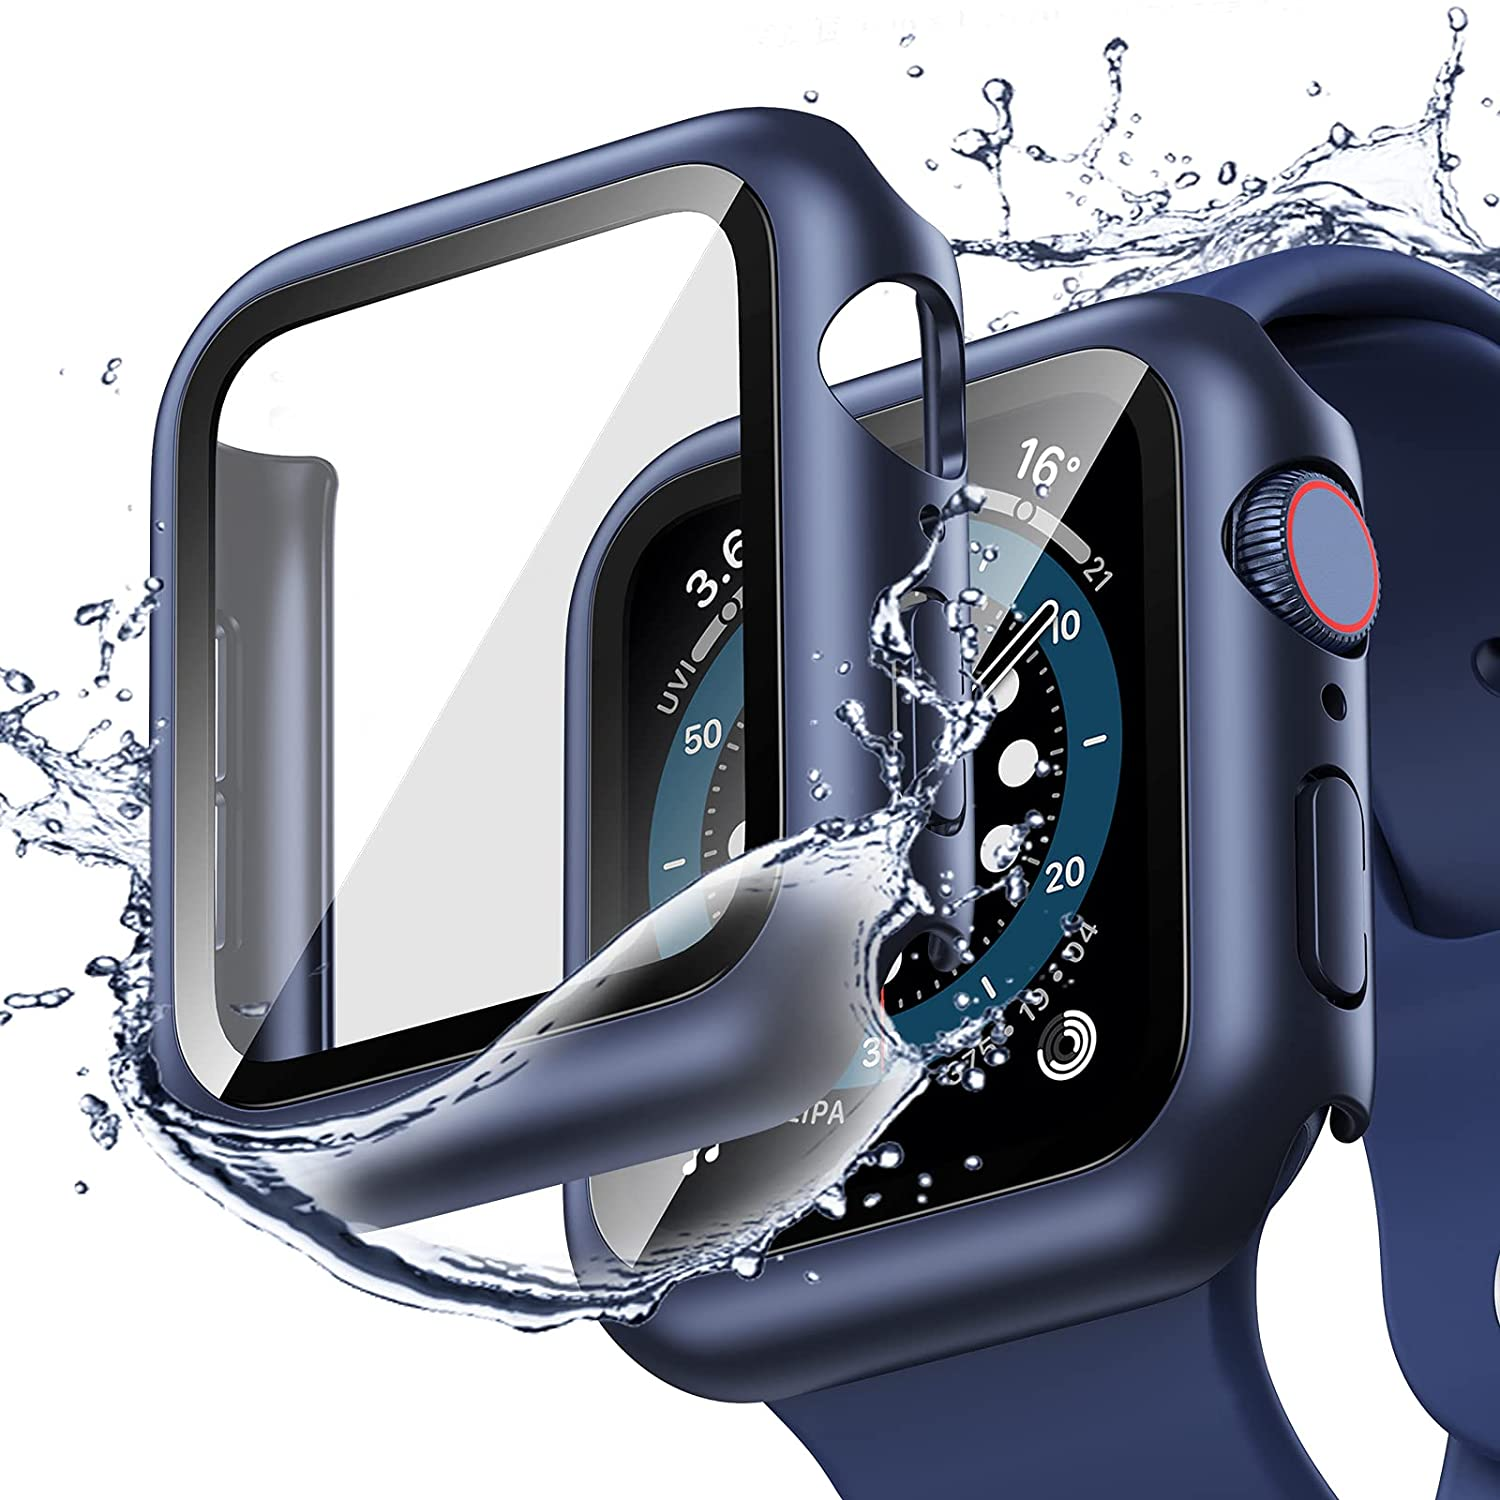 [2 Pack] Goton Waterproof Case Compatible for Apple Watch SE Series 6 /5 /4 44mm Case with Screen Protector, PC Matte Hard HD Tempered Glass Full Face Cover Protective Bumper Watch Case Accessories for iwatch women men (Blue+Blue, 44mm)